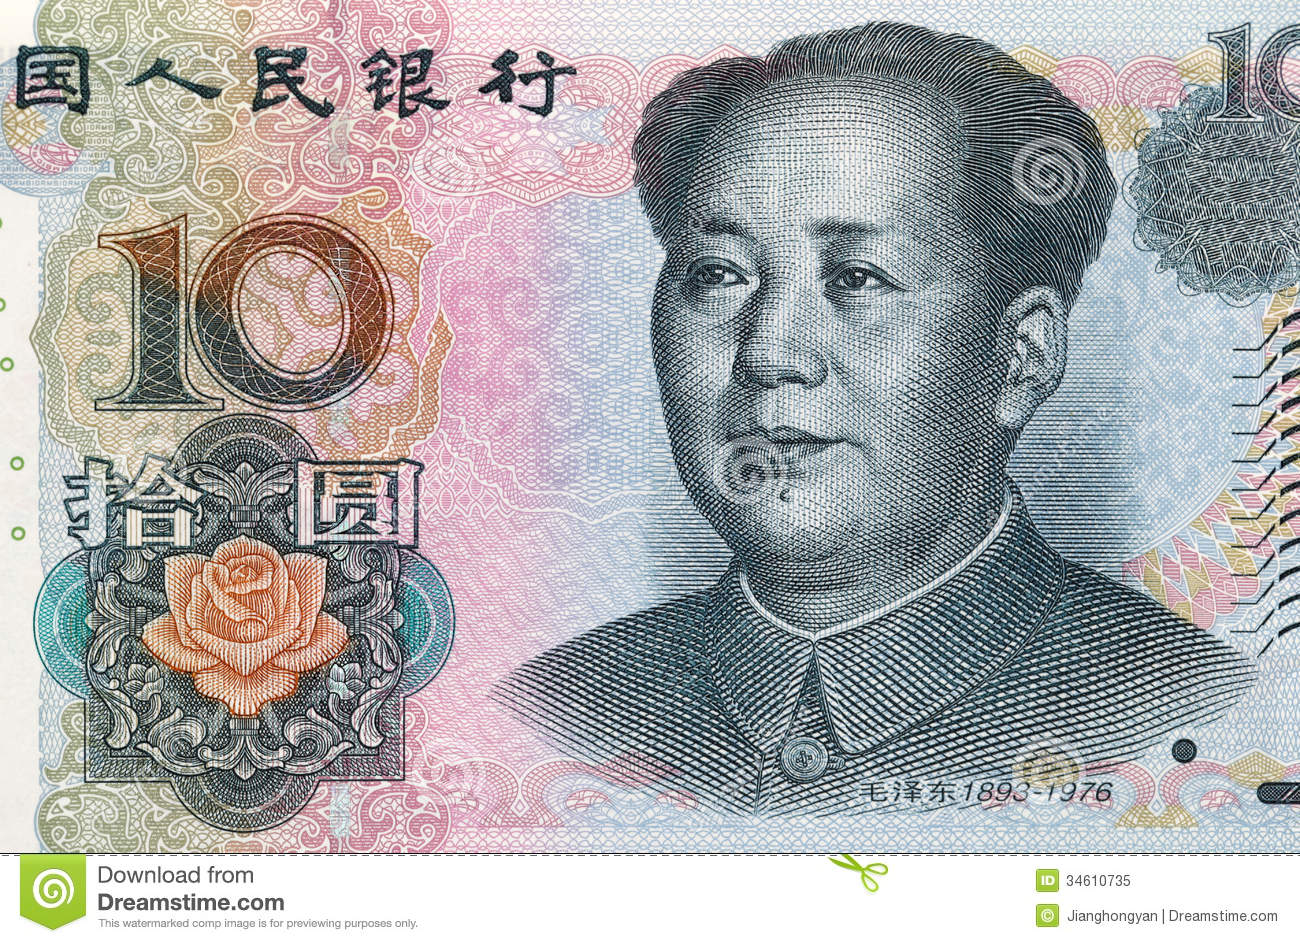 paper money value A banknote (often known as a bill, paper money, or simply a note) is a type of negotiable promissory note, made by a bank, payable to the bearer on demand thus leading to hyperinflation and a loss of faith in the value of paper money.